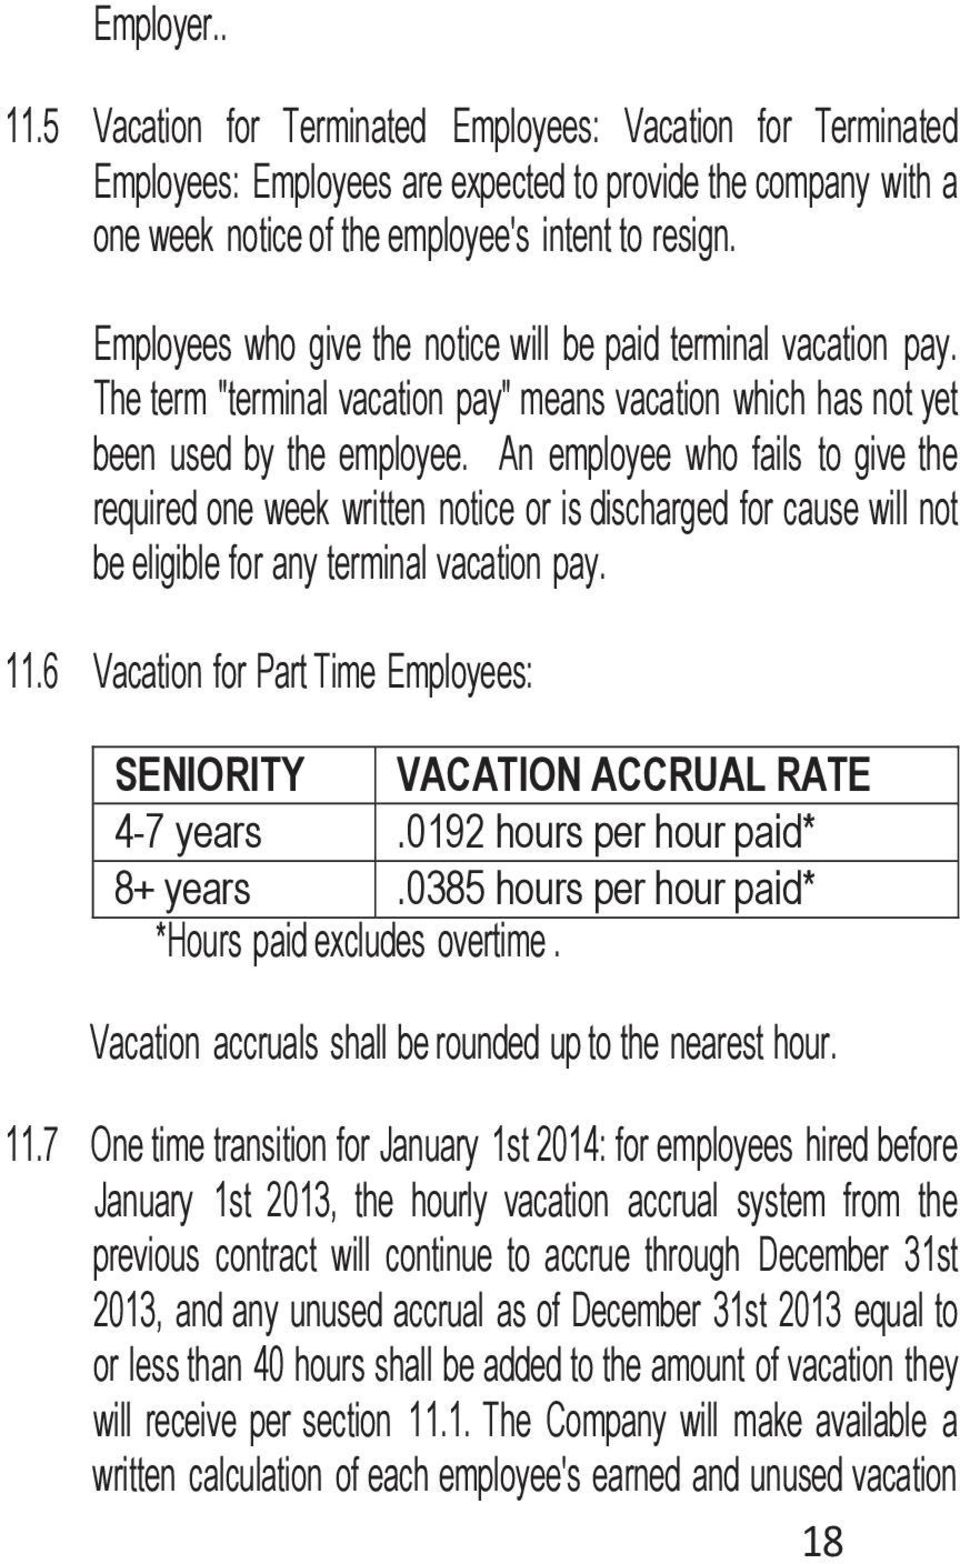 An employee who fails to give the required one week written notice or is discharged for cause will not be eligible for any terminal vacation pay. 11.